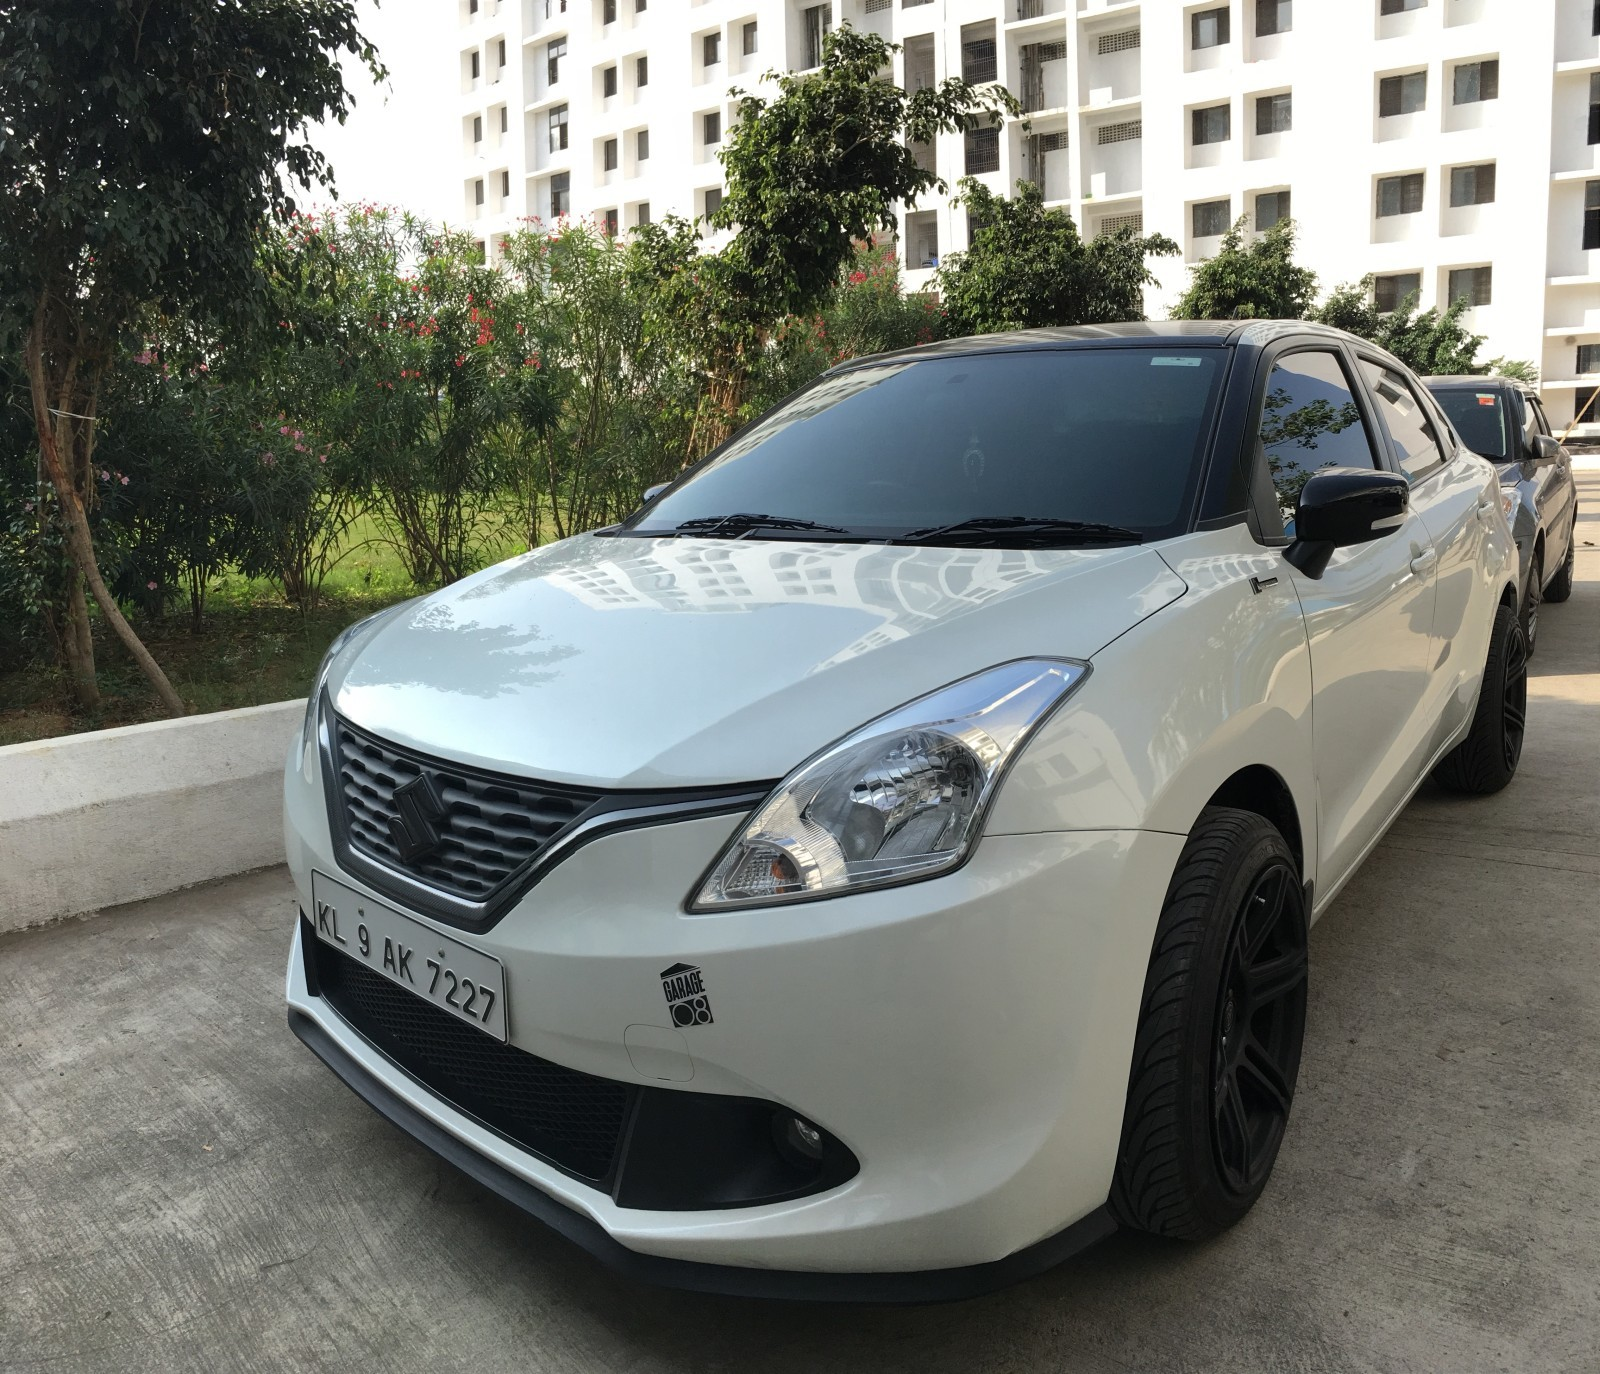 I Modified My Baleno Delta Let Me Know Your Thoughts